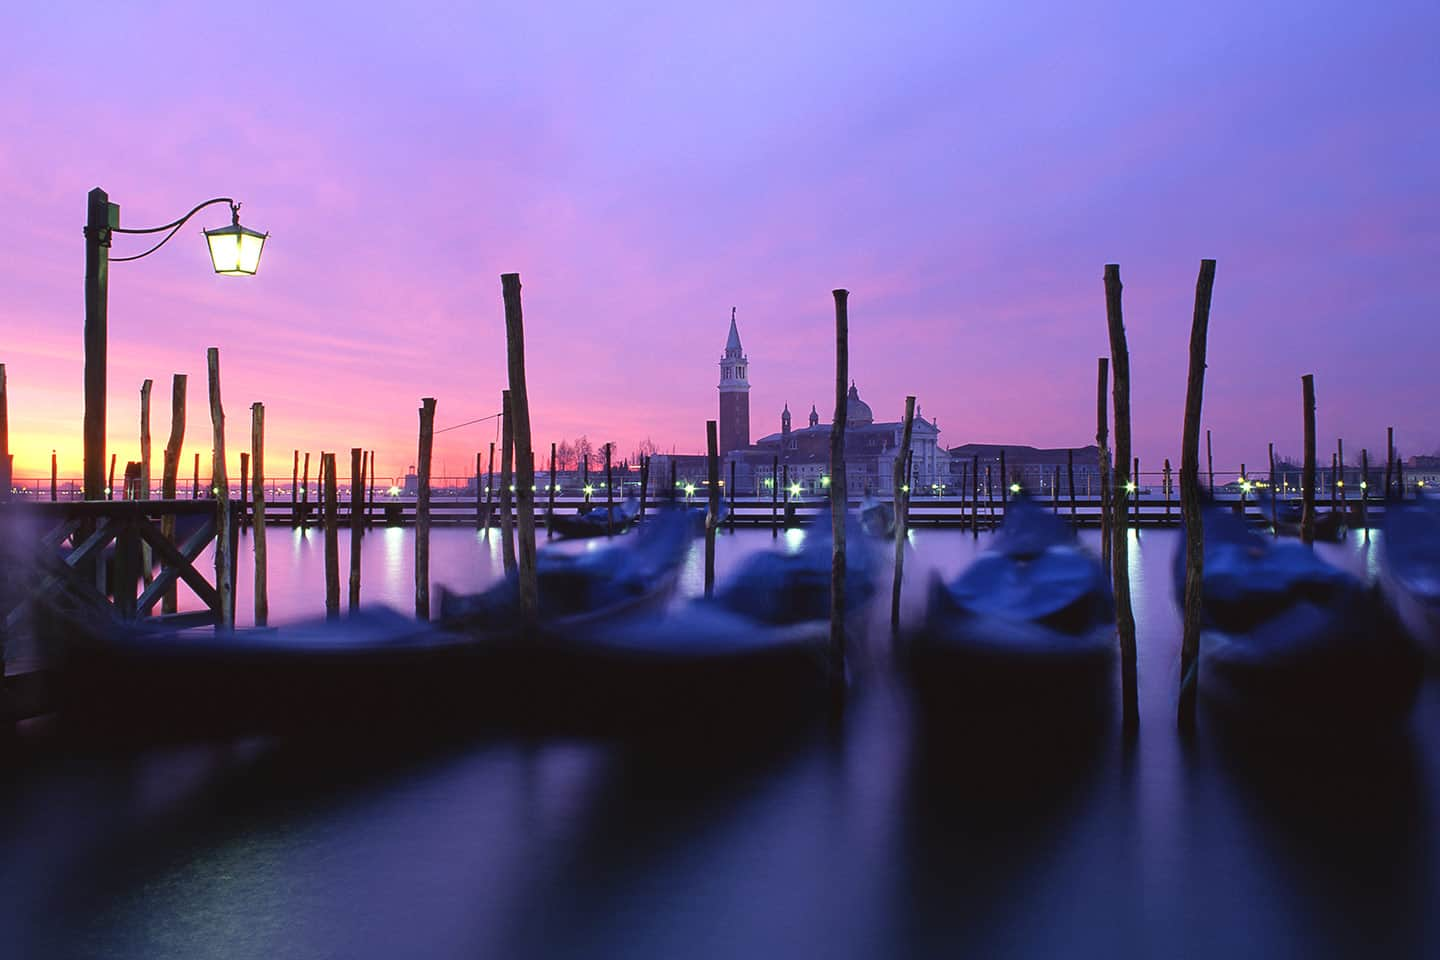 Image of gondolas and San Giorgio Maggiore church in Venice at dawn